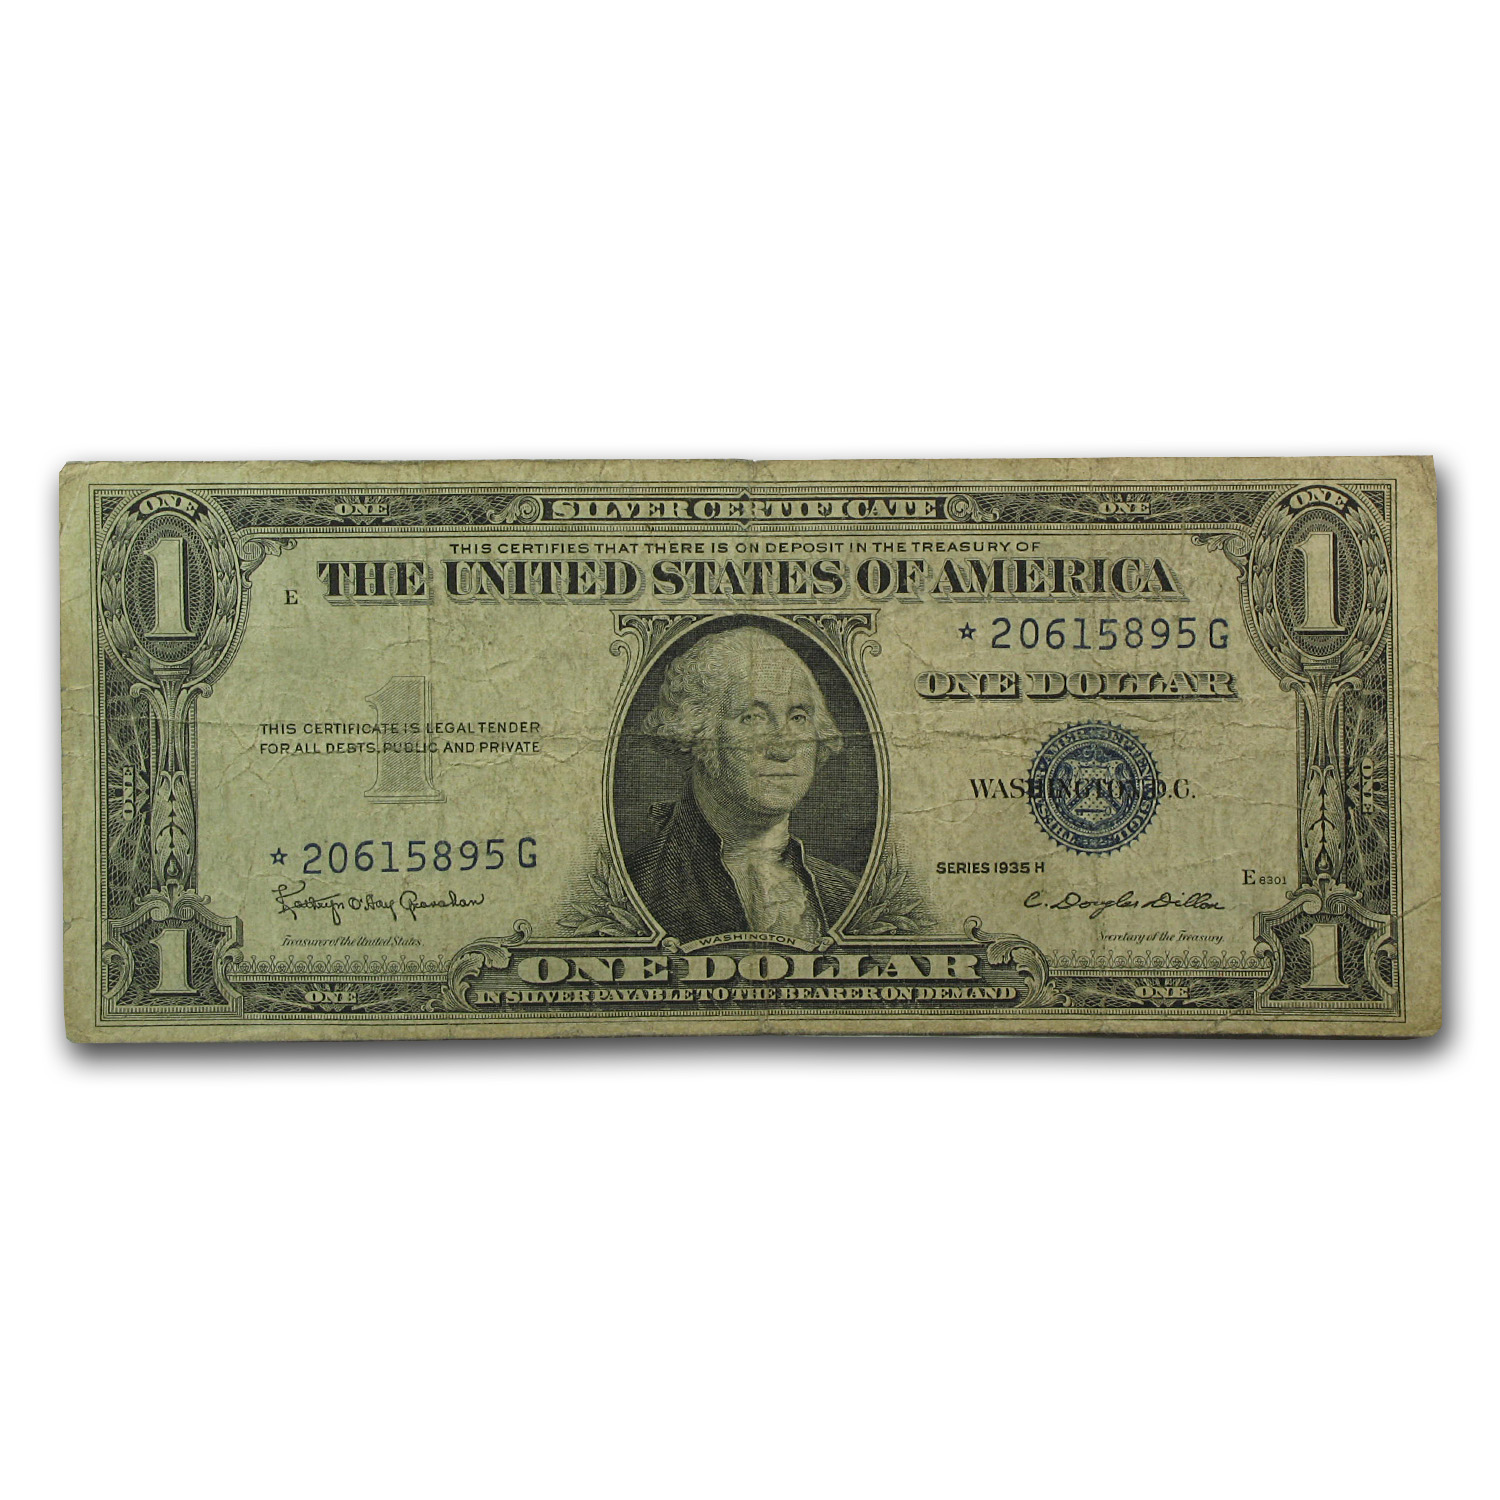 1935-H* $1.00 Silver Certificate (Average Circulated)